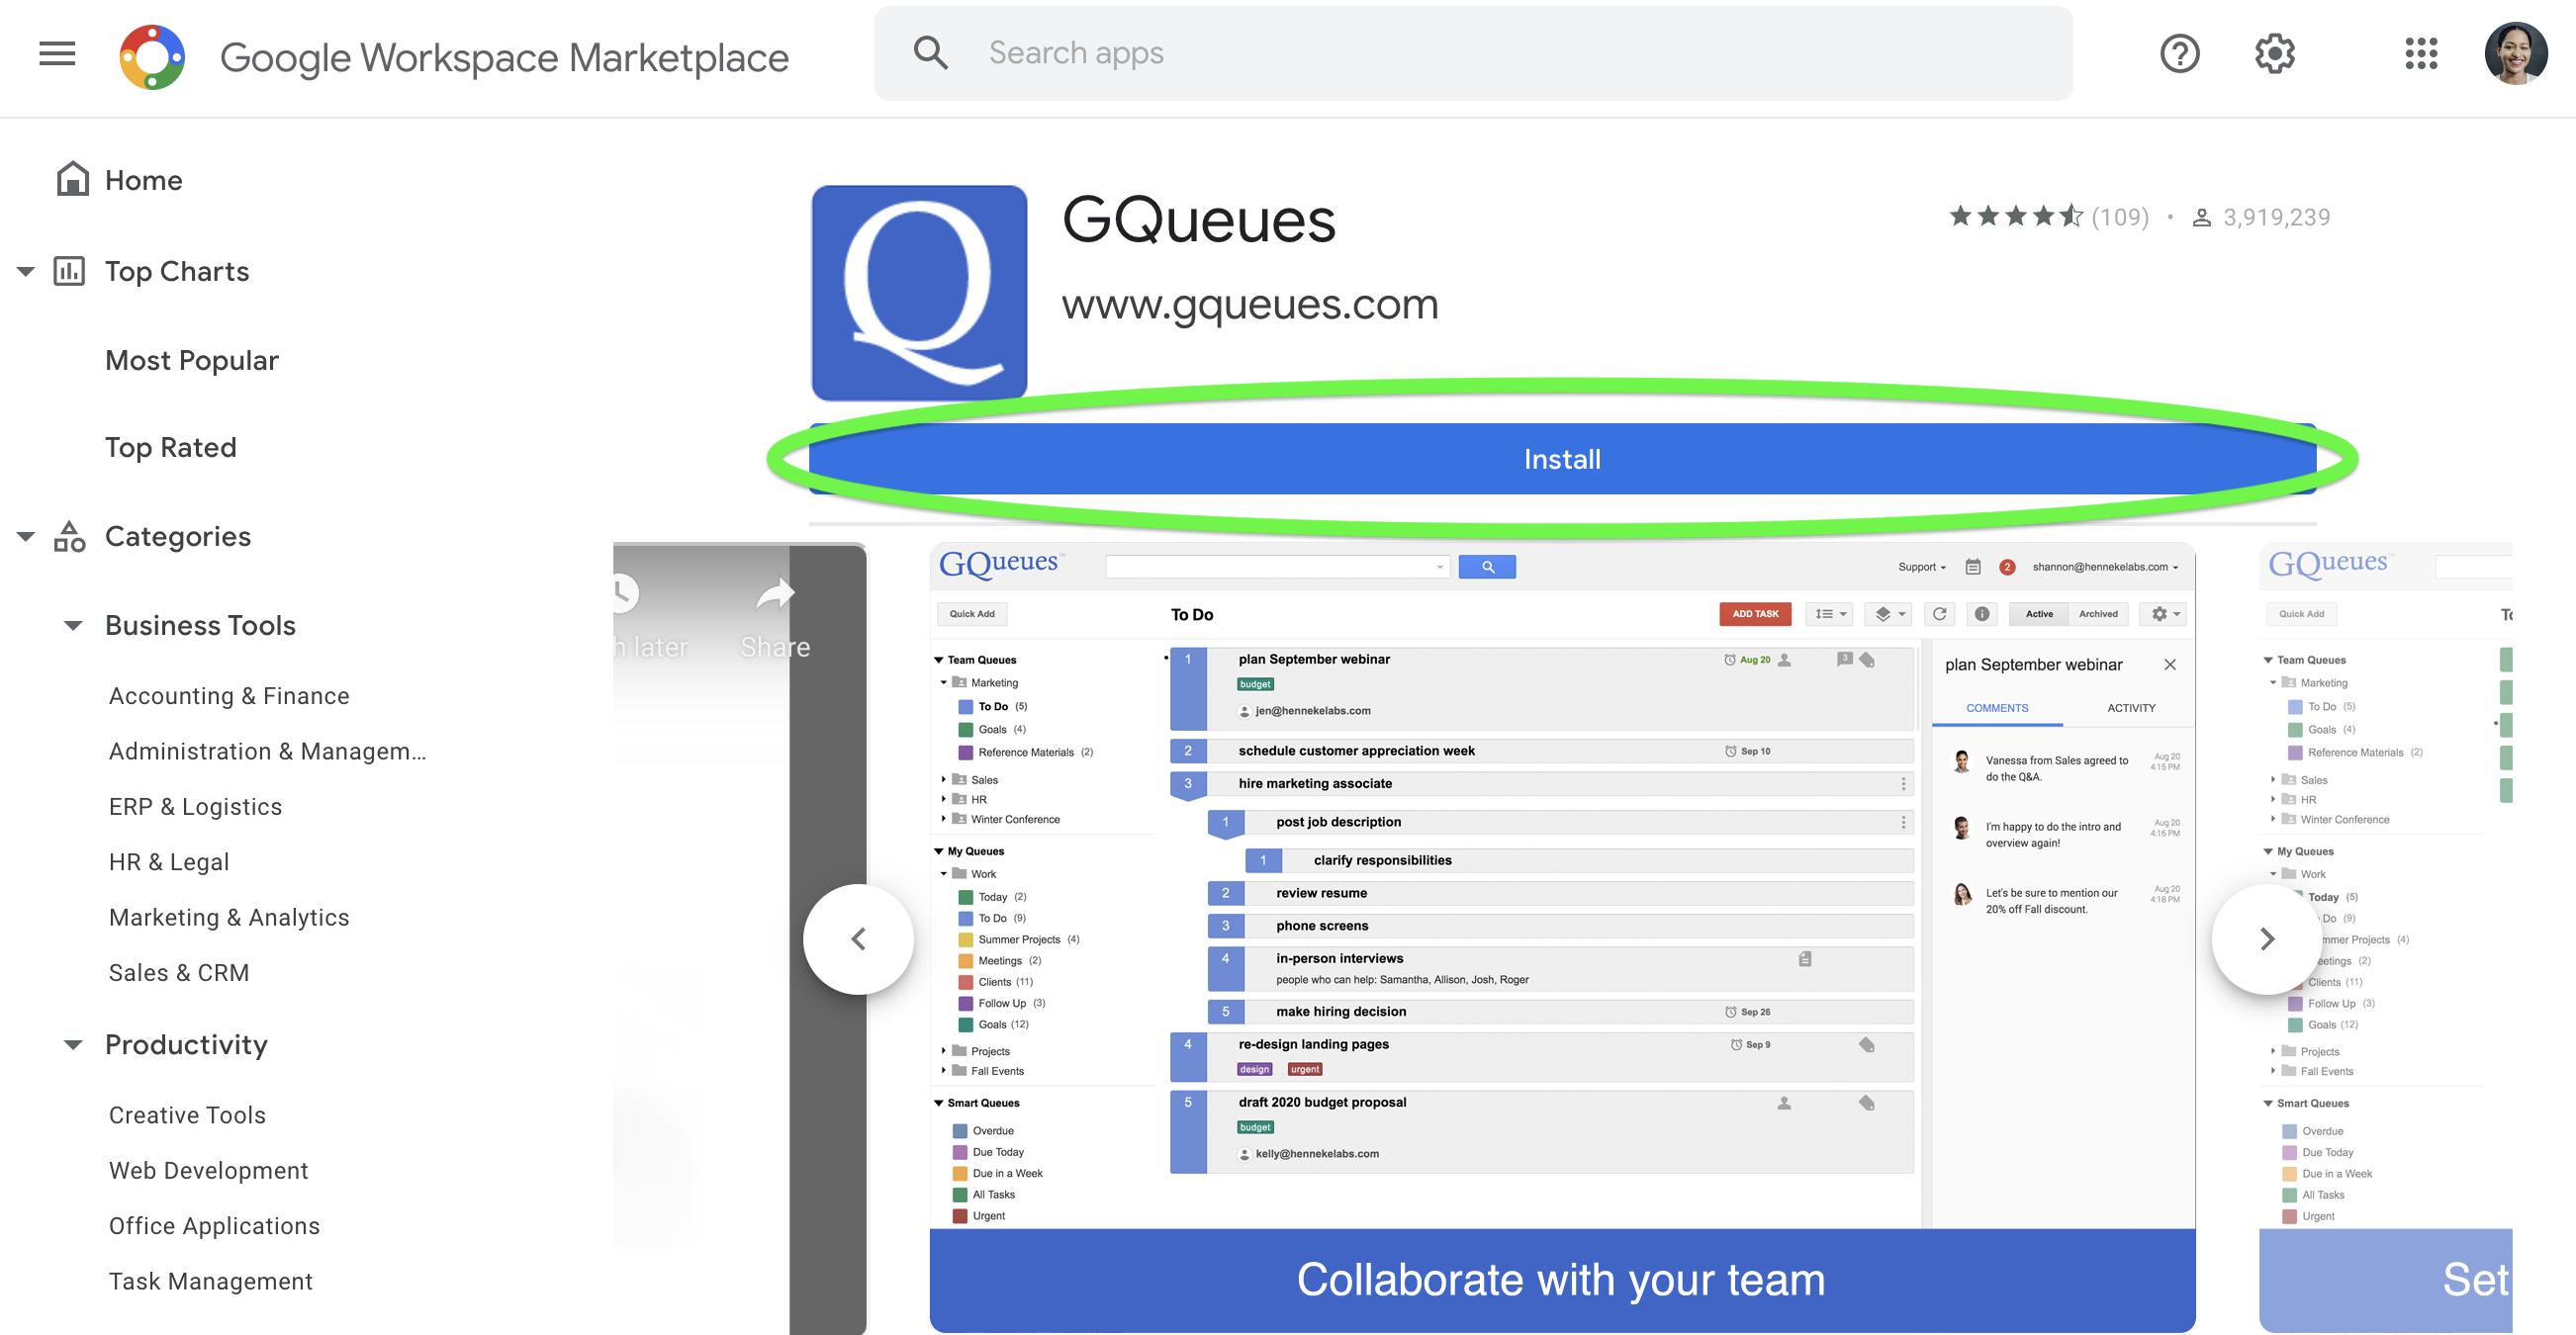 Install GQueues on your Google Account from the Google Workspace Marketplace